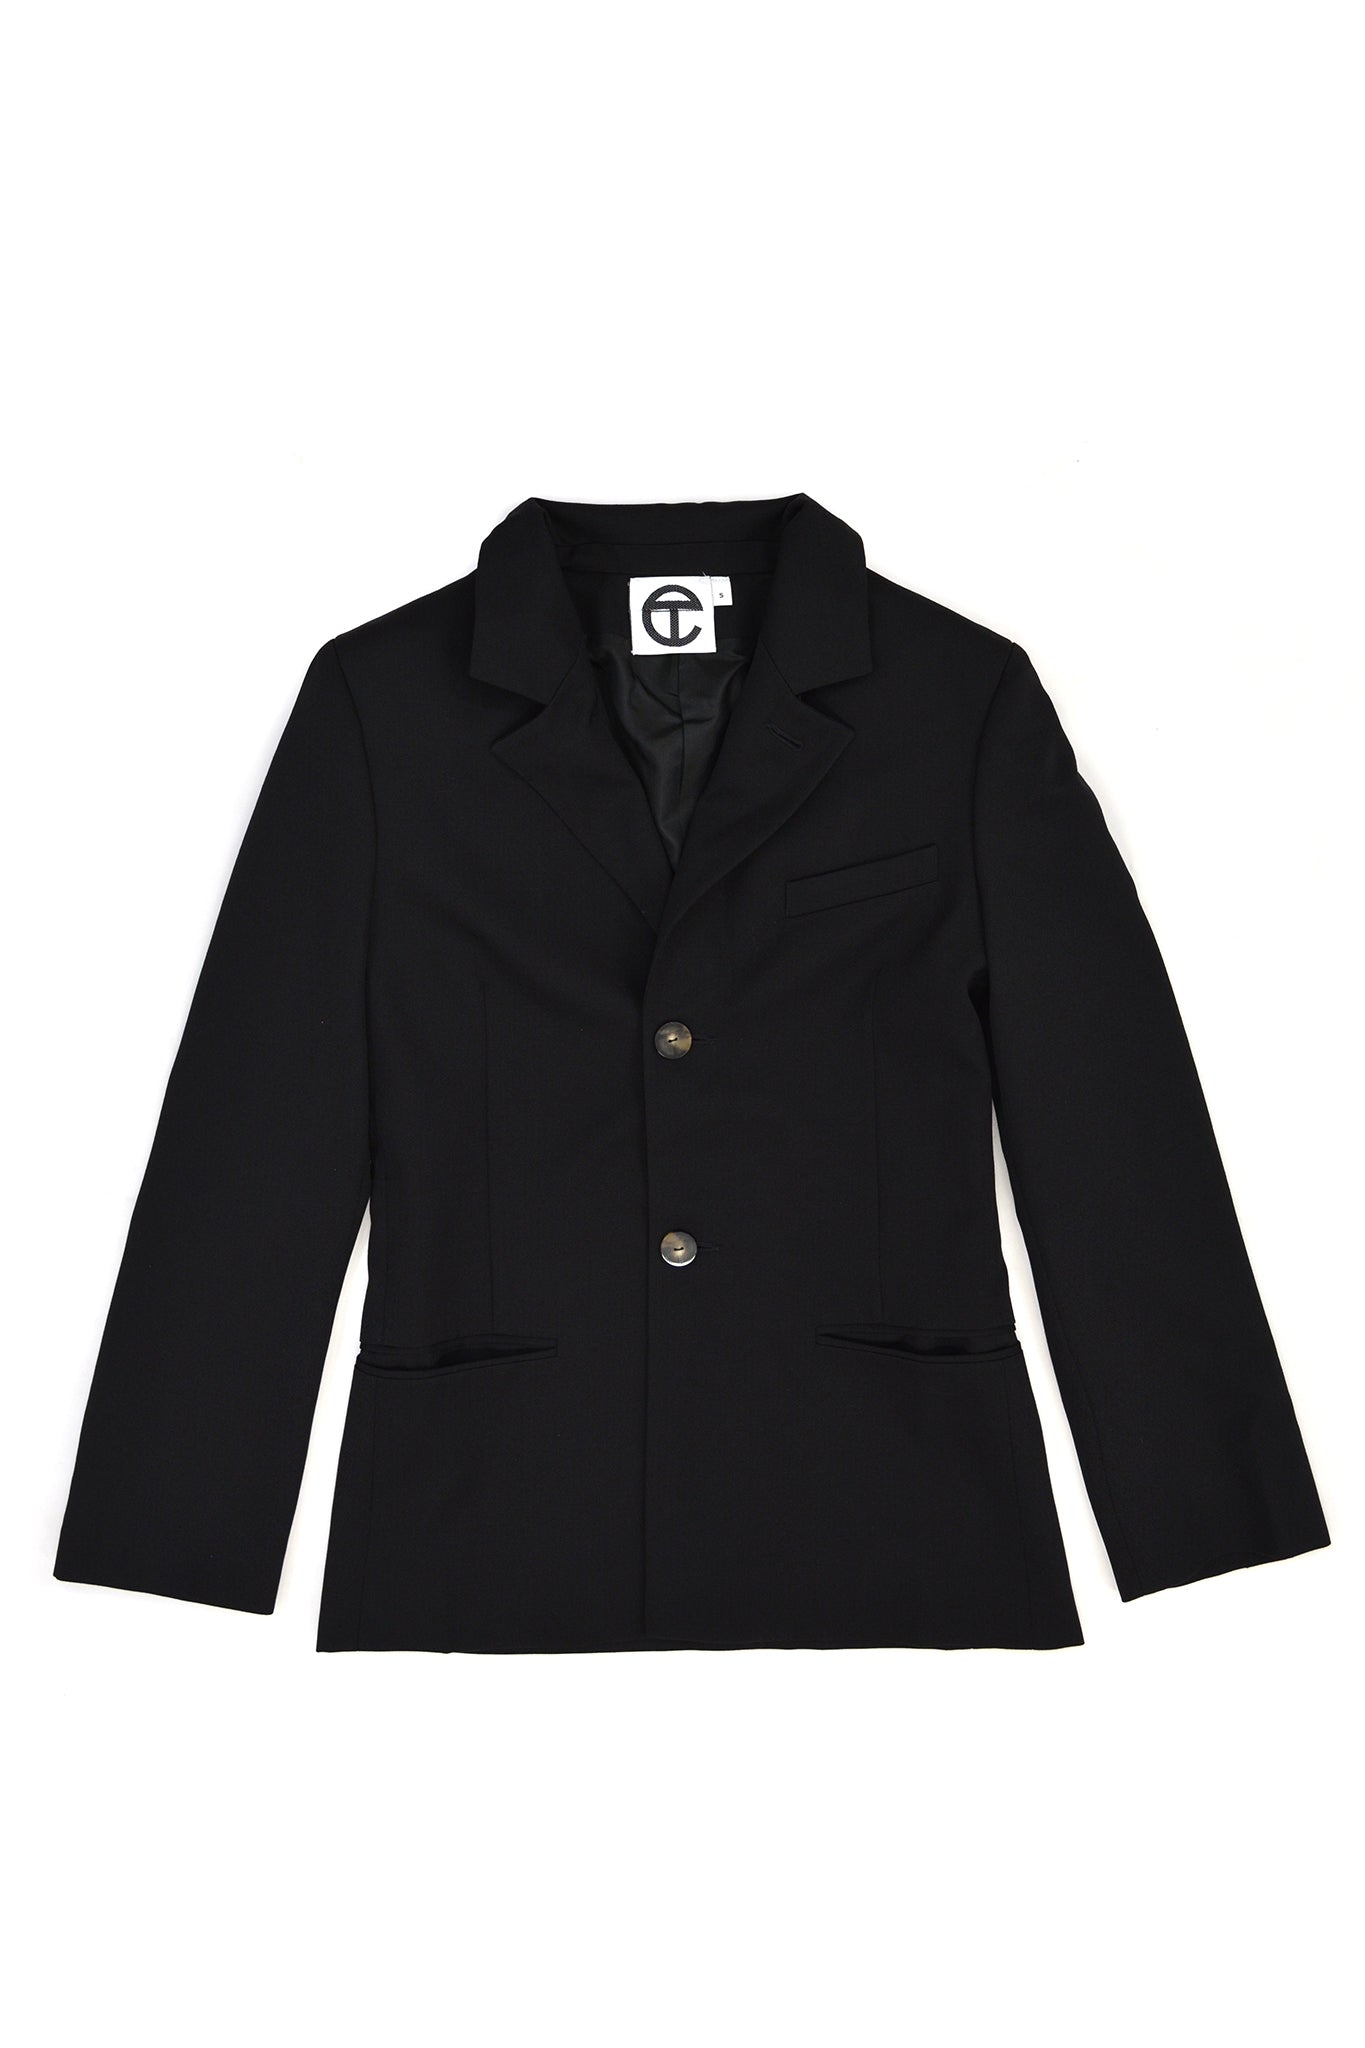 Telfar High Collar Blazer